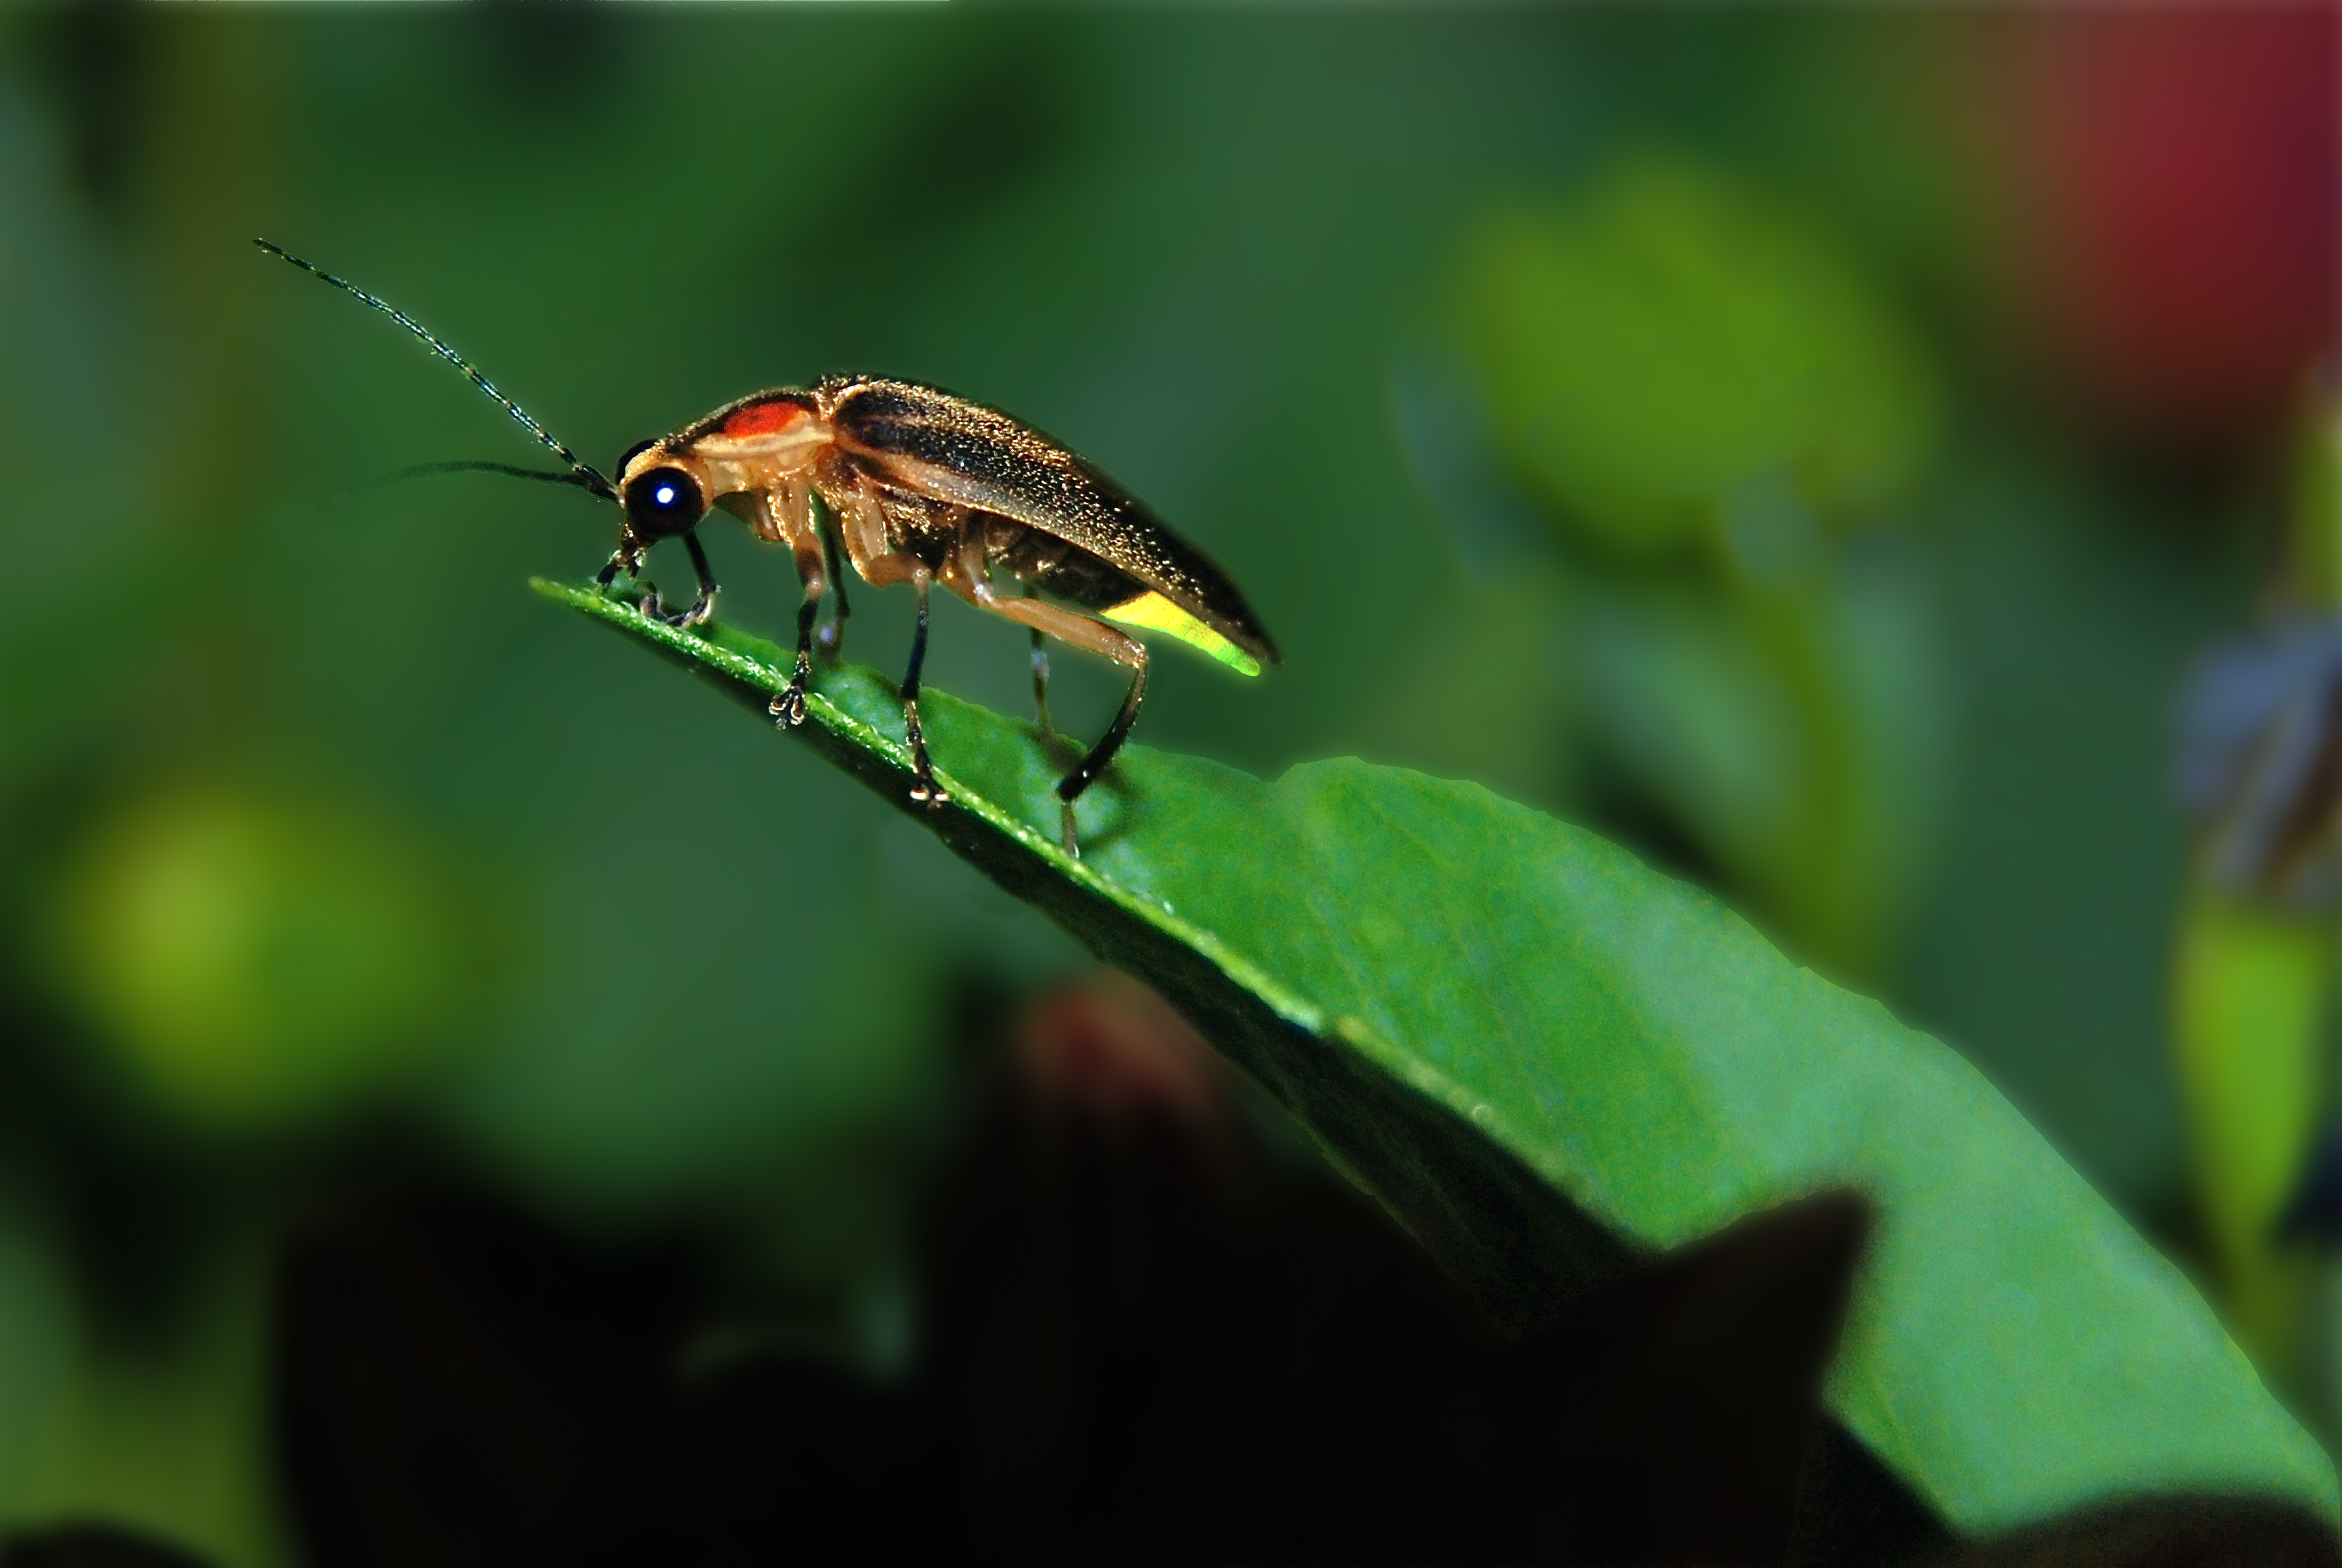 A firefly resting on a leaf.